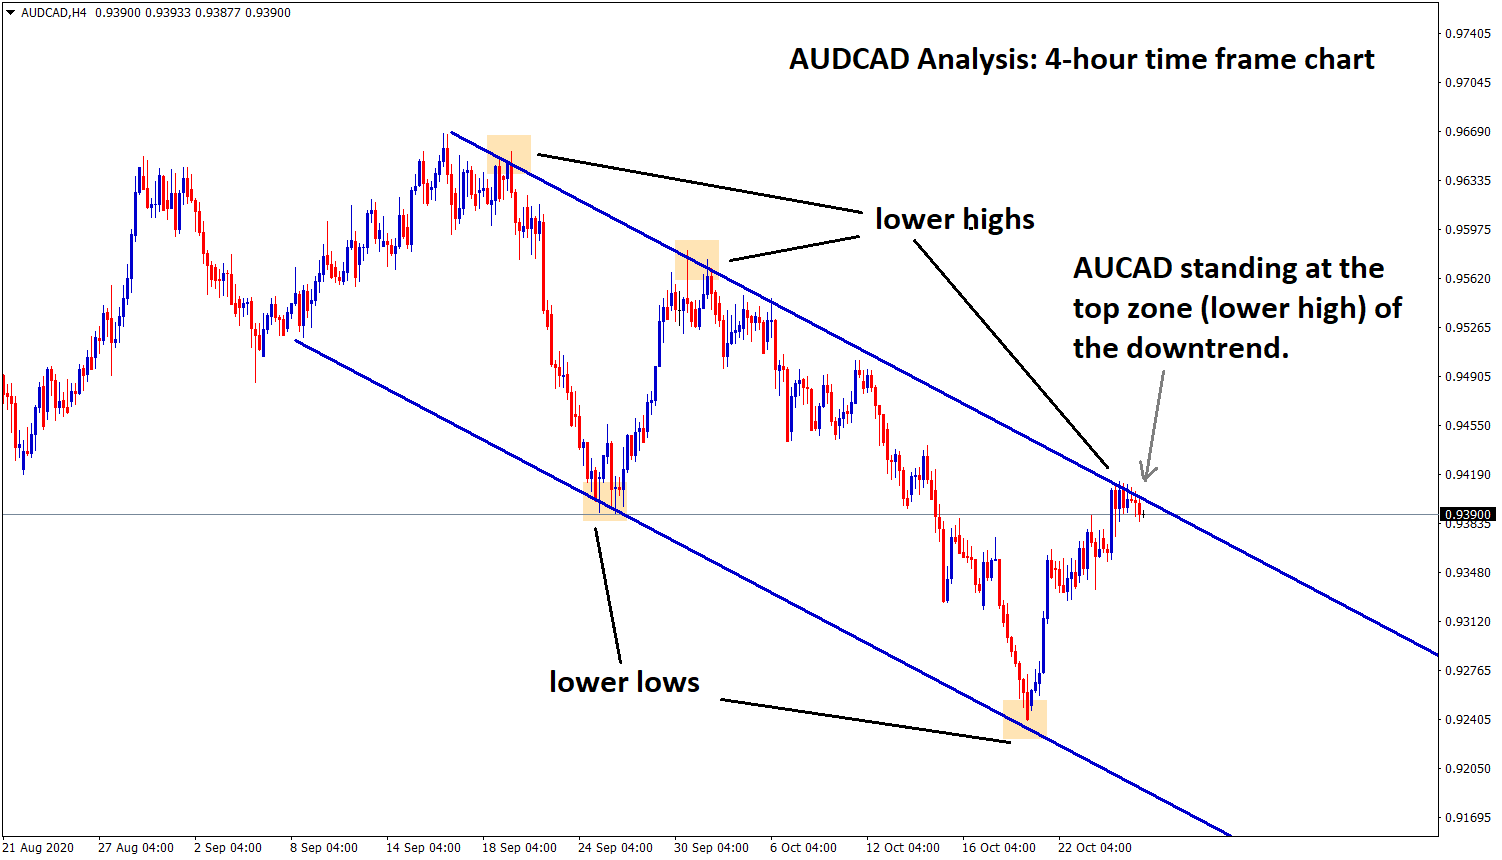 AUDCAD reached the top zone of the downtrend line h4